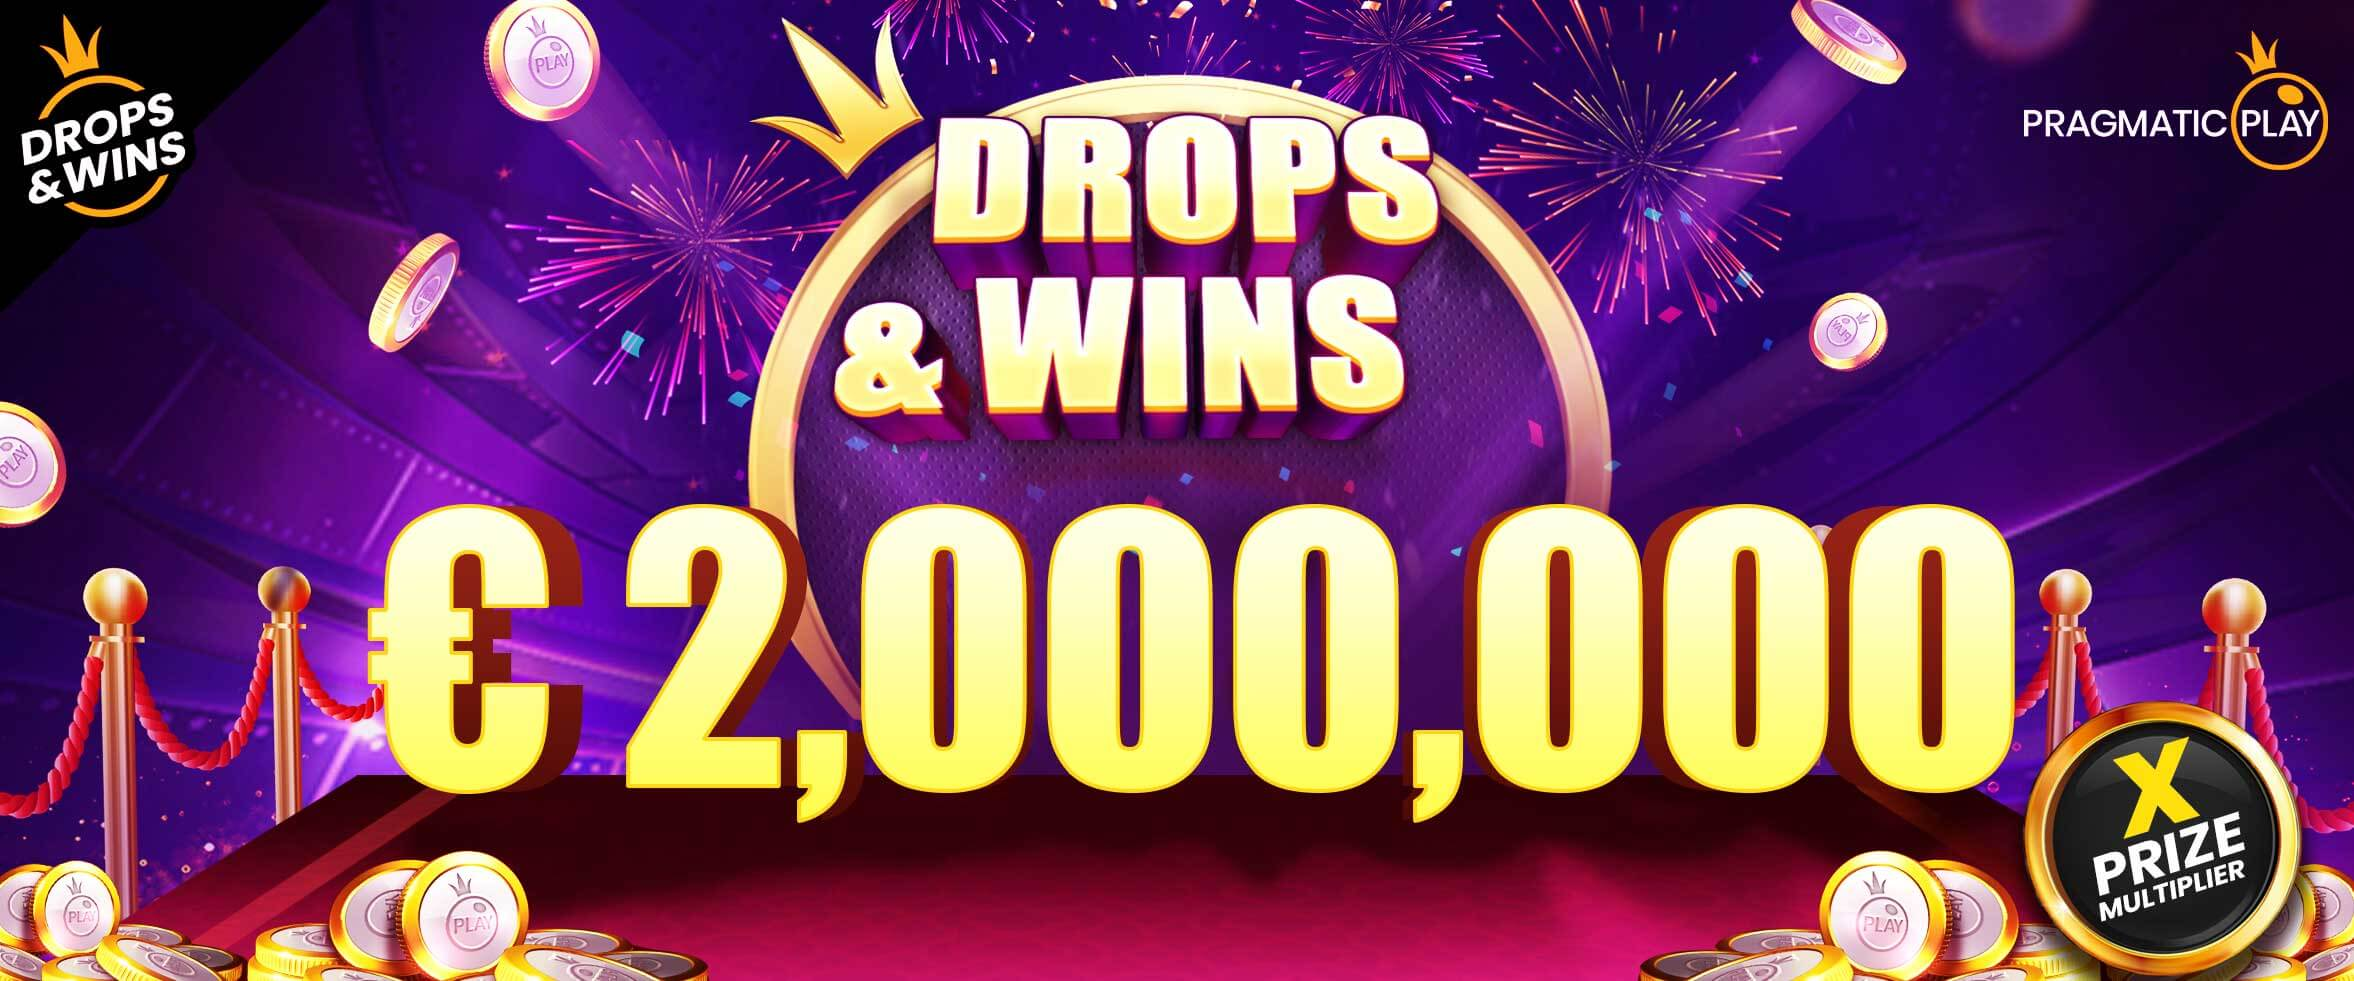 €2,000,000 Promotion Runs now Through February